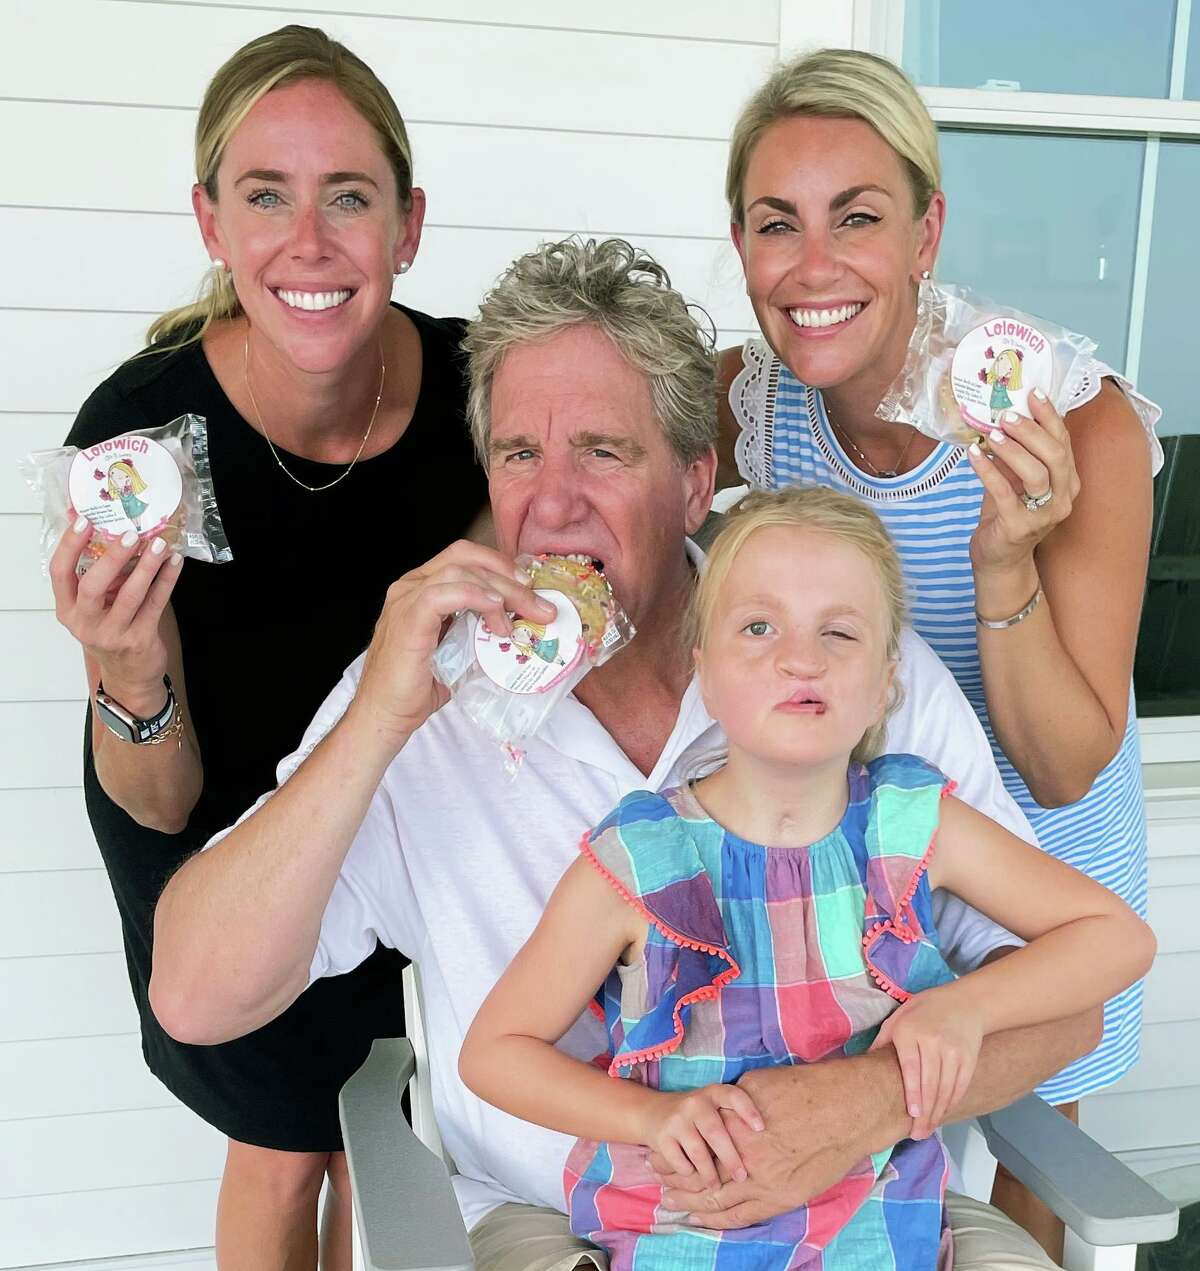 From left to right, enjoying a LoloWich are Kimberly Crowley, Melissa Shepley, Doug Rice and Lola.